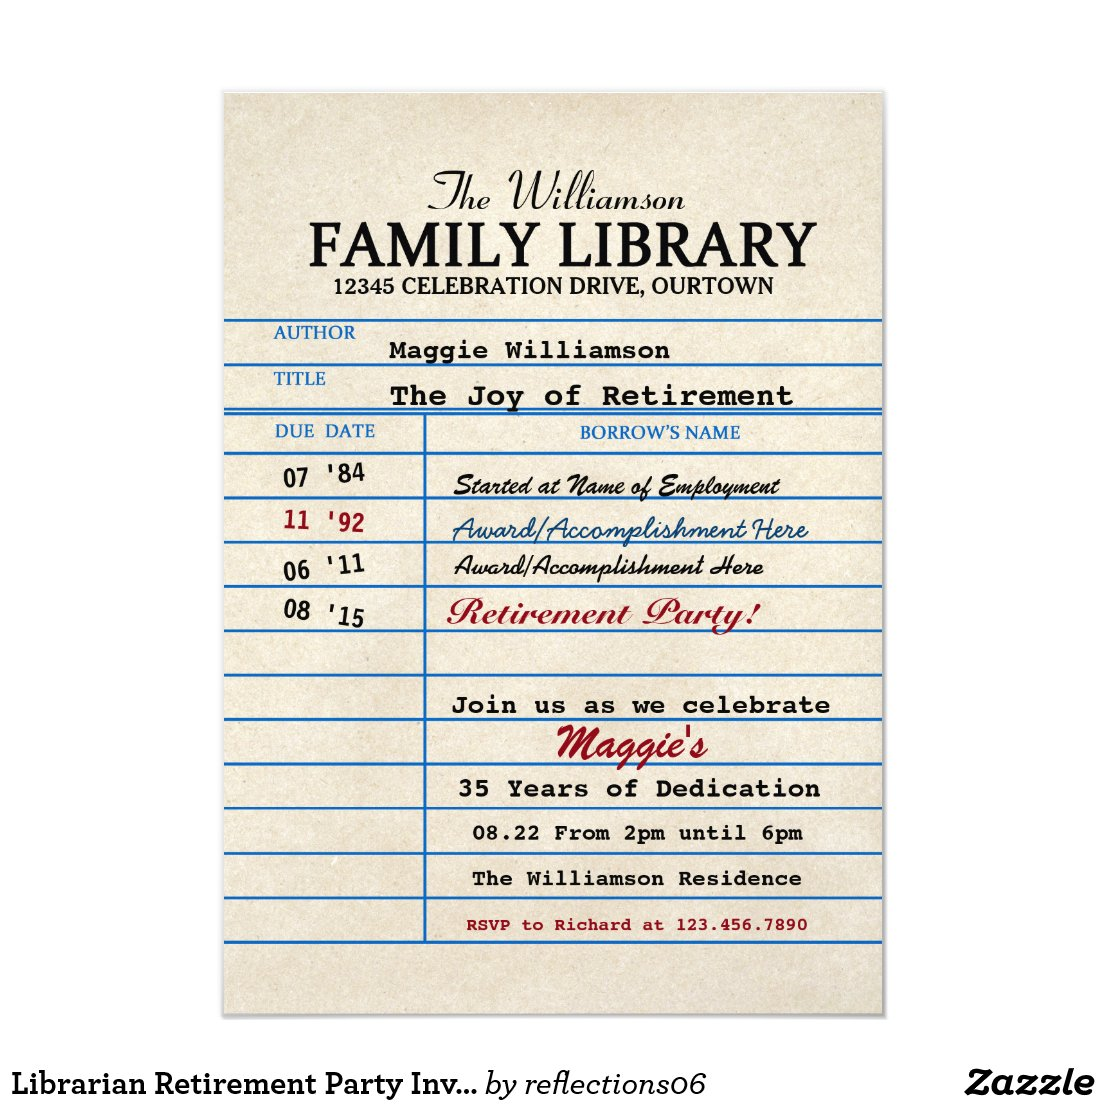 Librarian Retirement Party Invitations